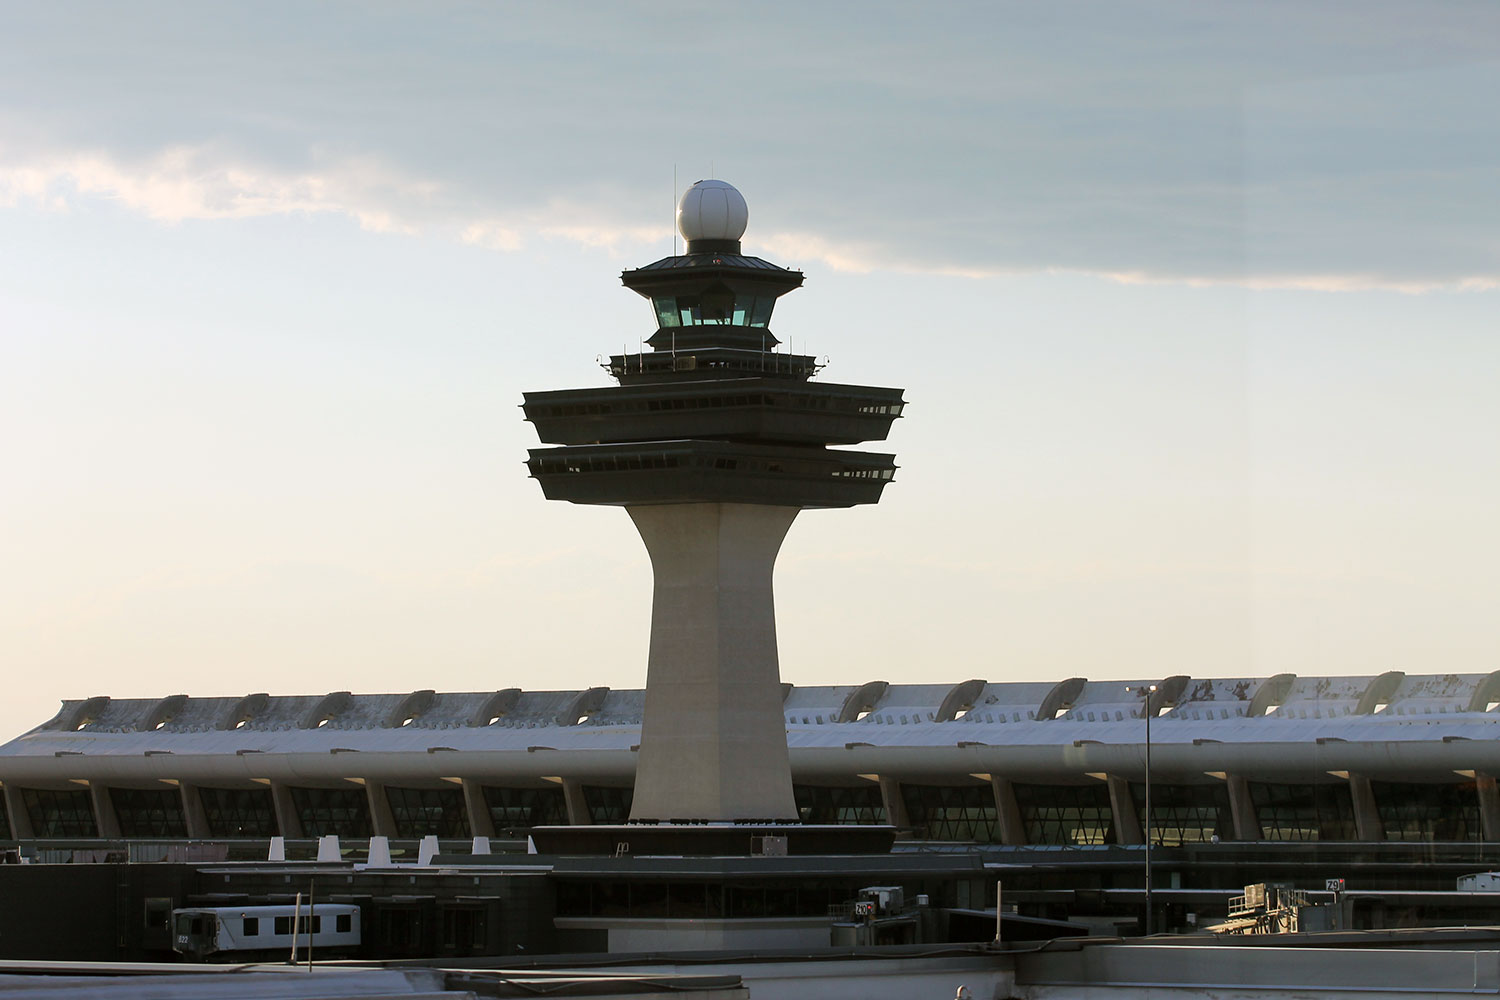 washington dulles tower